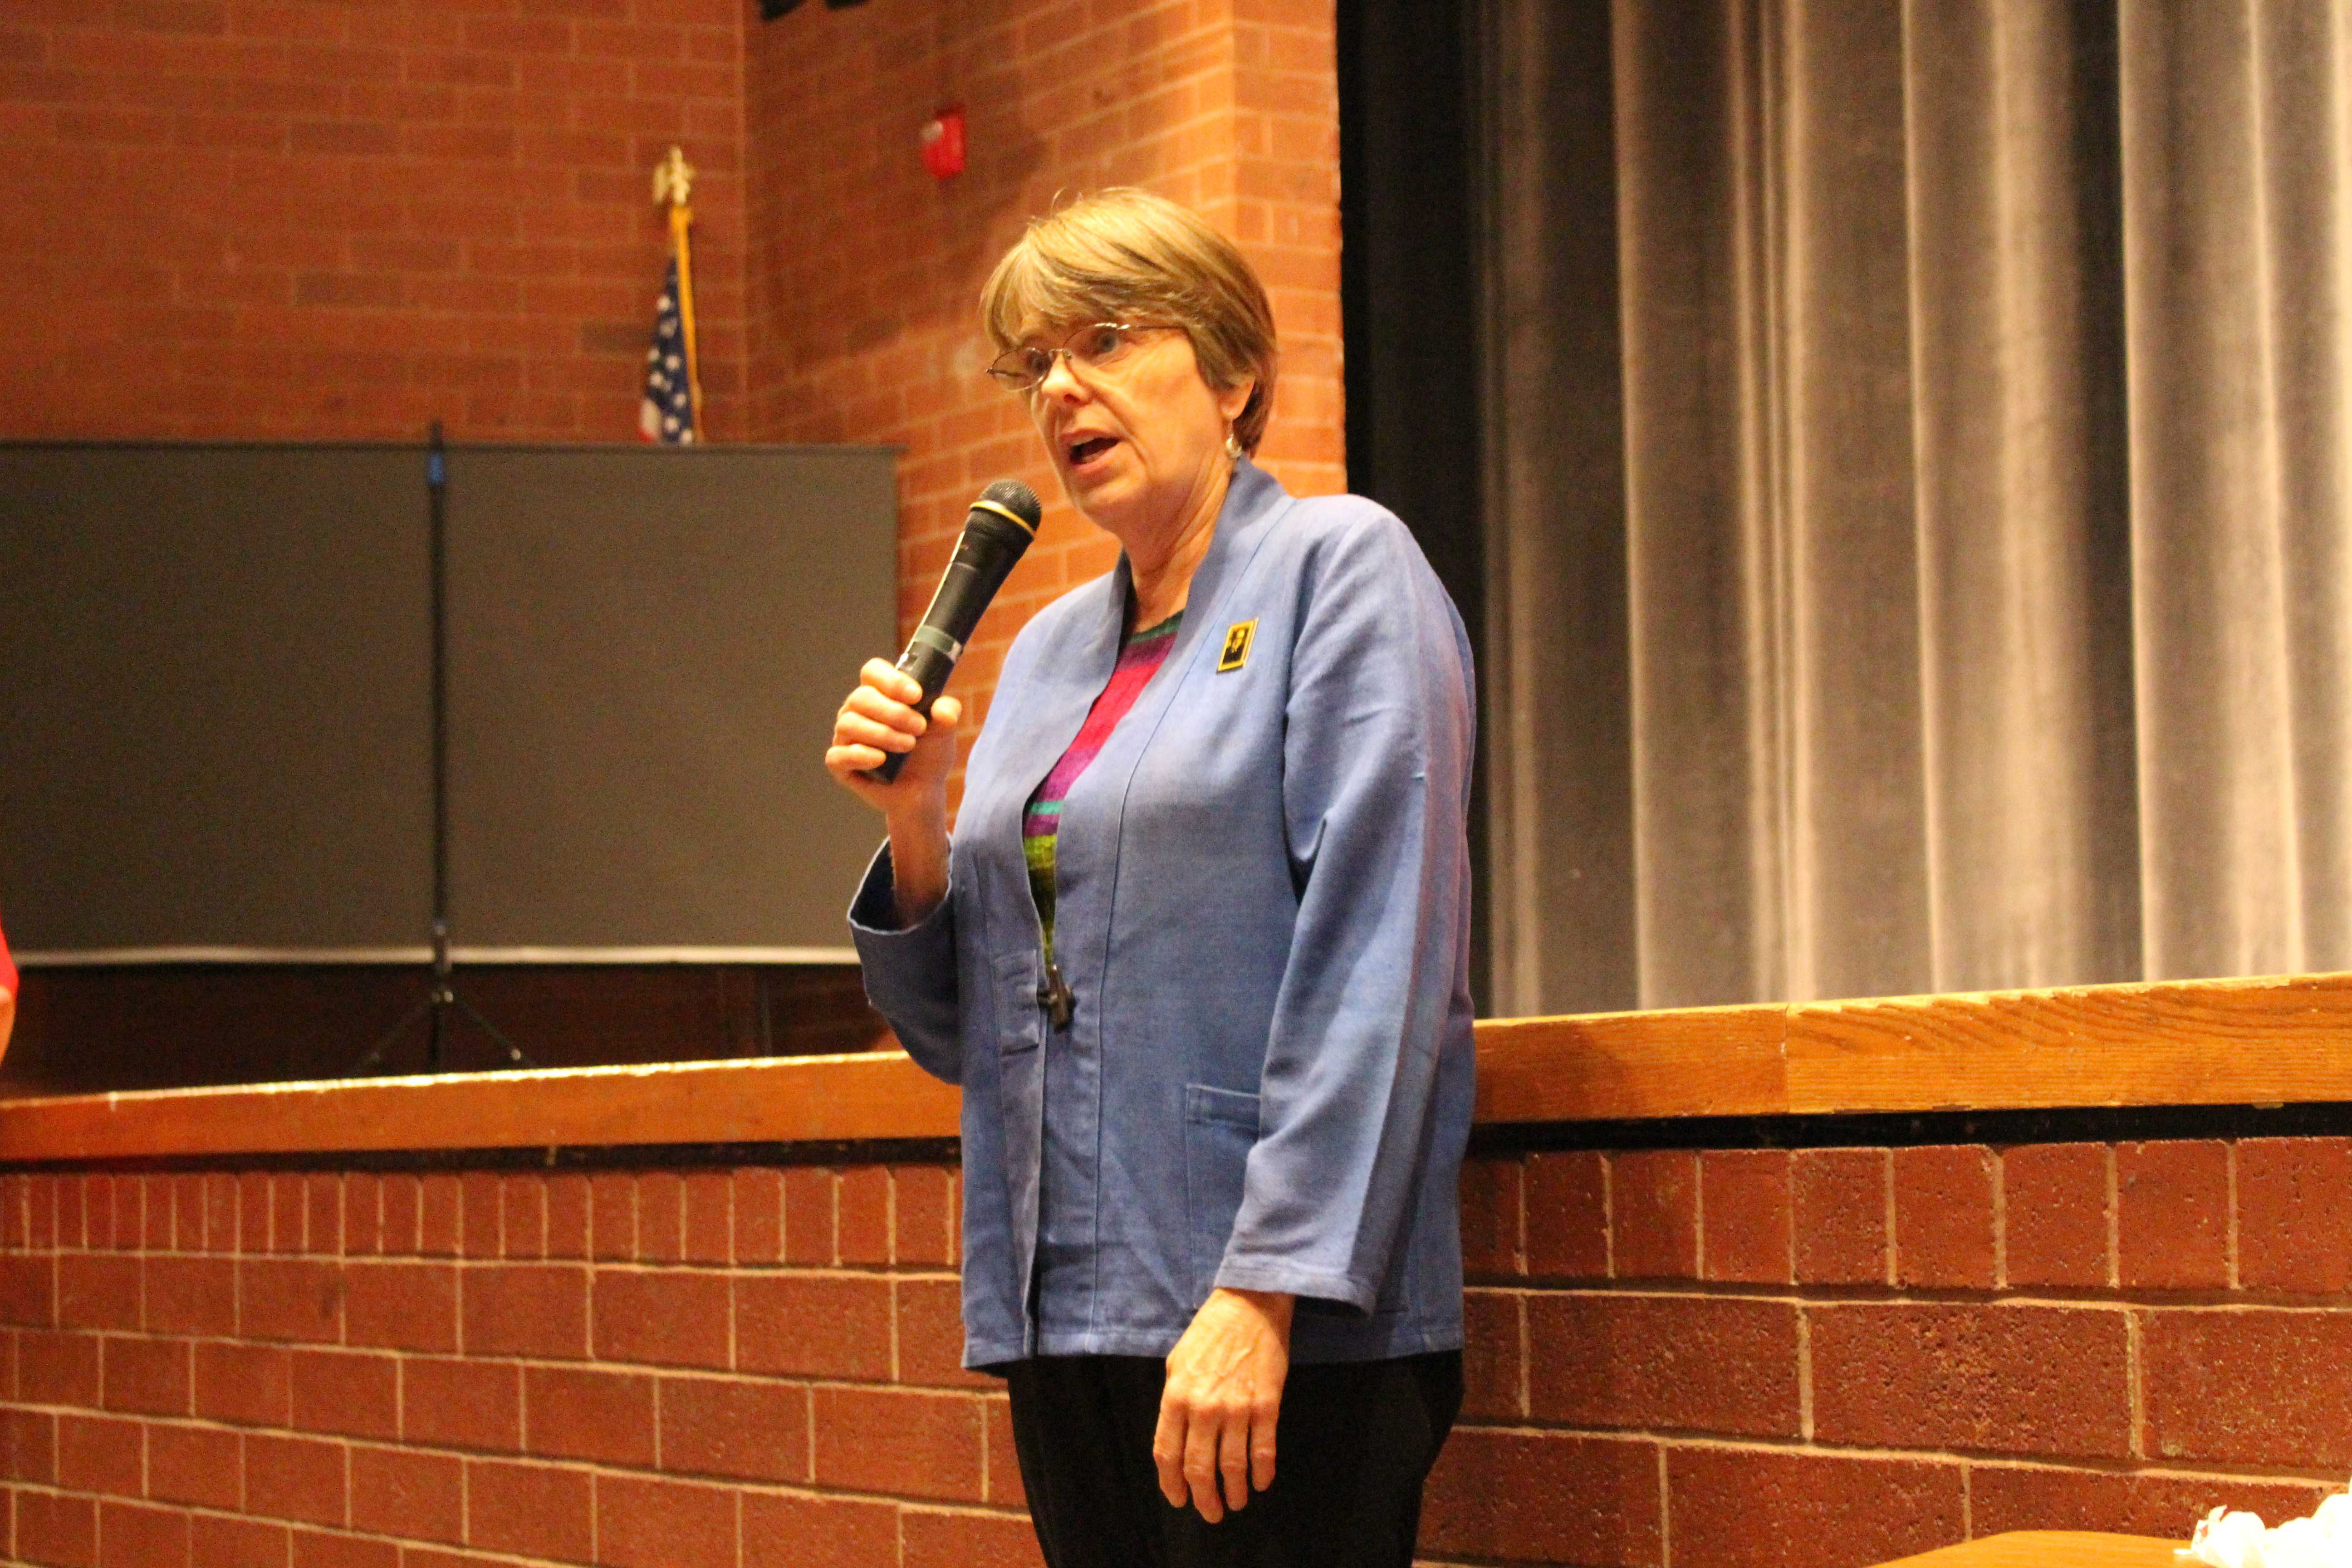 Q&A with Youth Rights Activist Mary Beth Tinker: RHS students deserve to have a voice